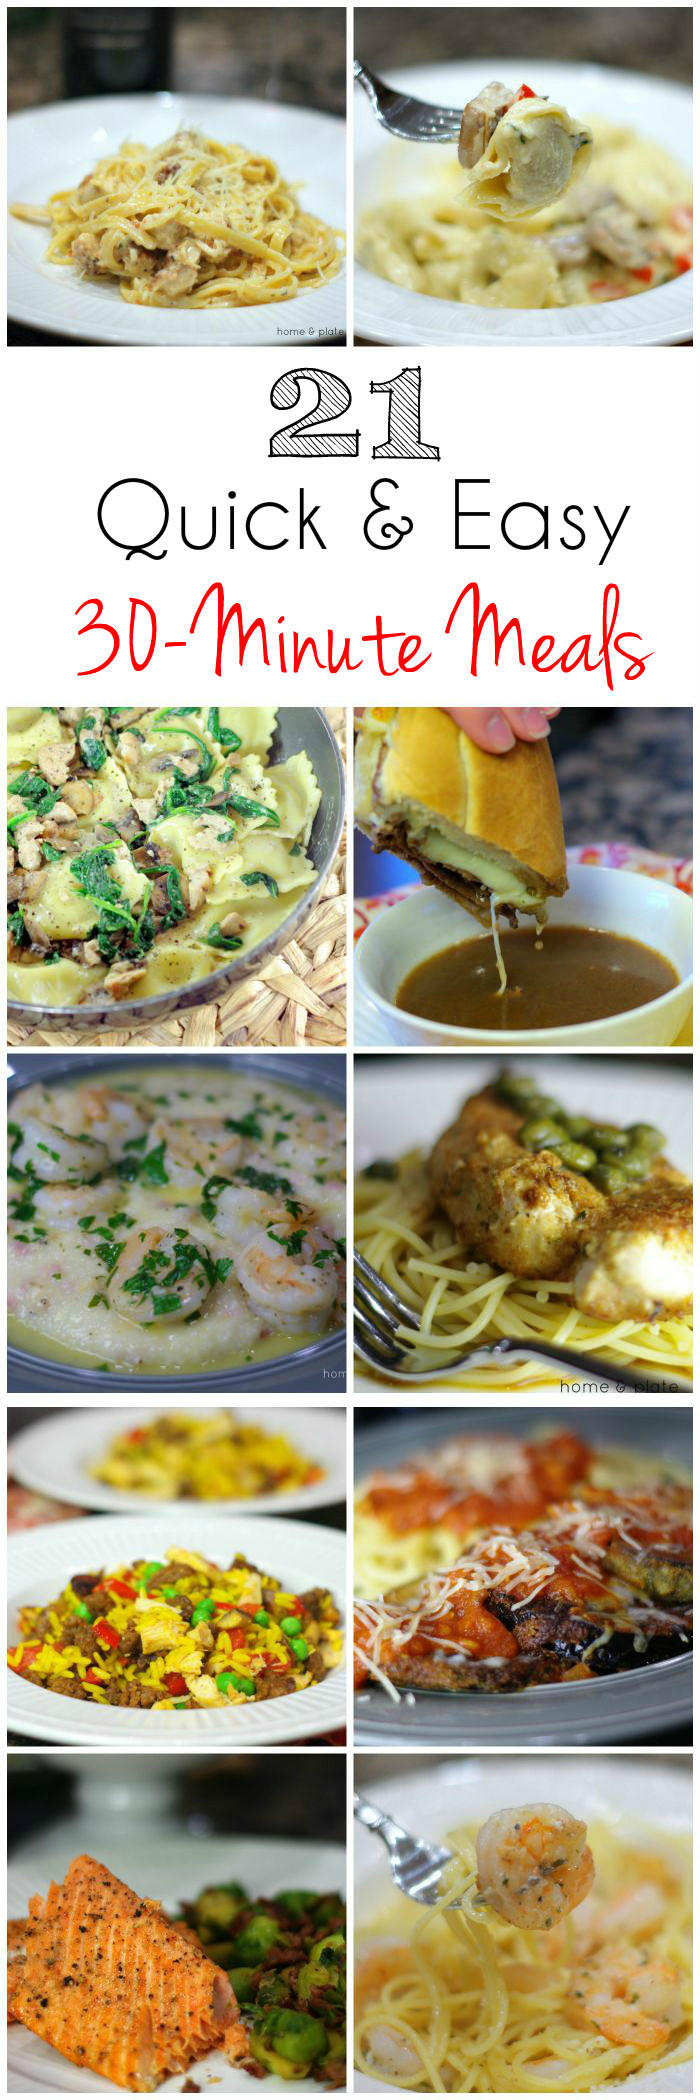 21 Quick & Easy 30-Minute Meals | Home & Plate | www.homeandplate.com | Wondering what to serve for dinner? Make one of these 21 recipes for your family in 30 minutes or less.